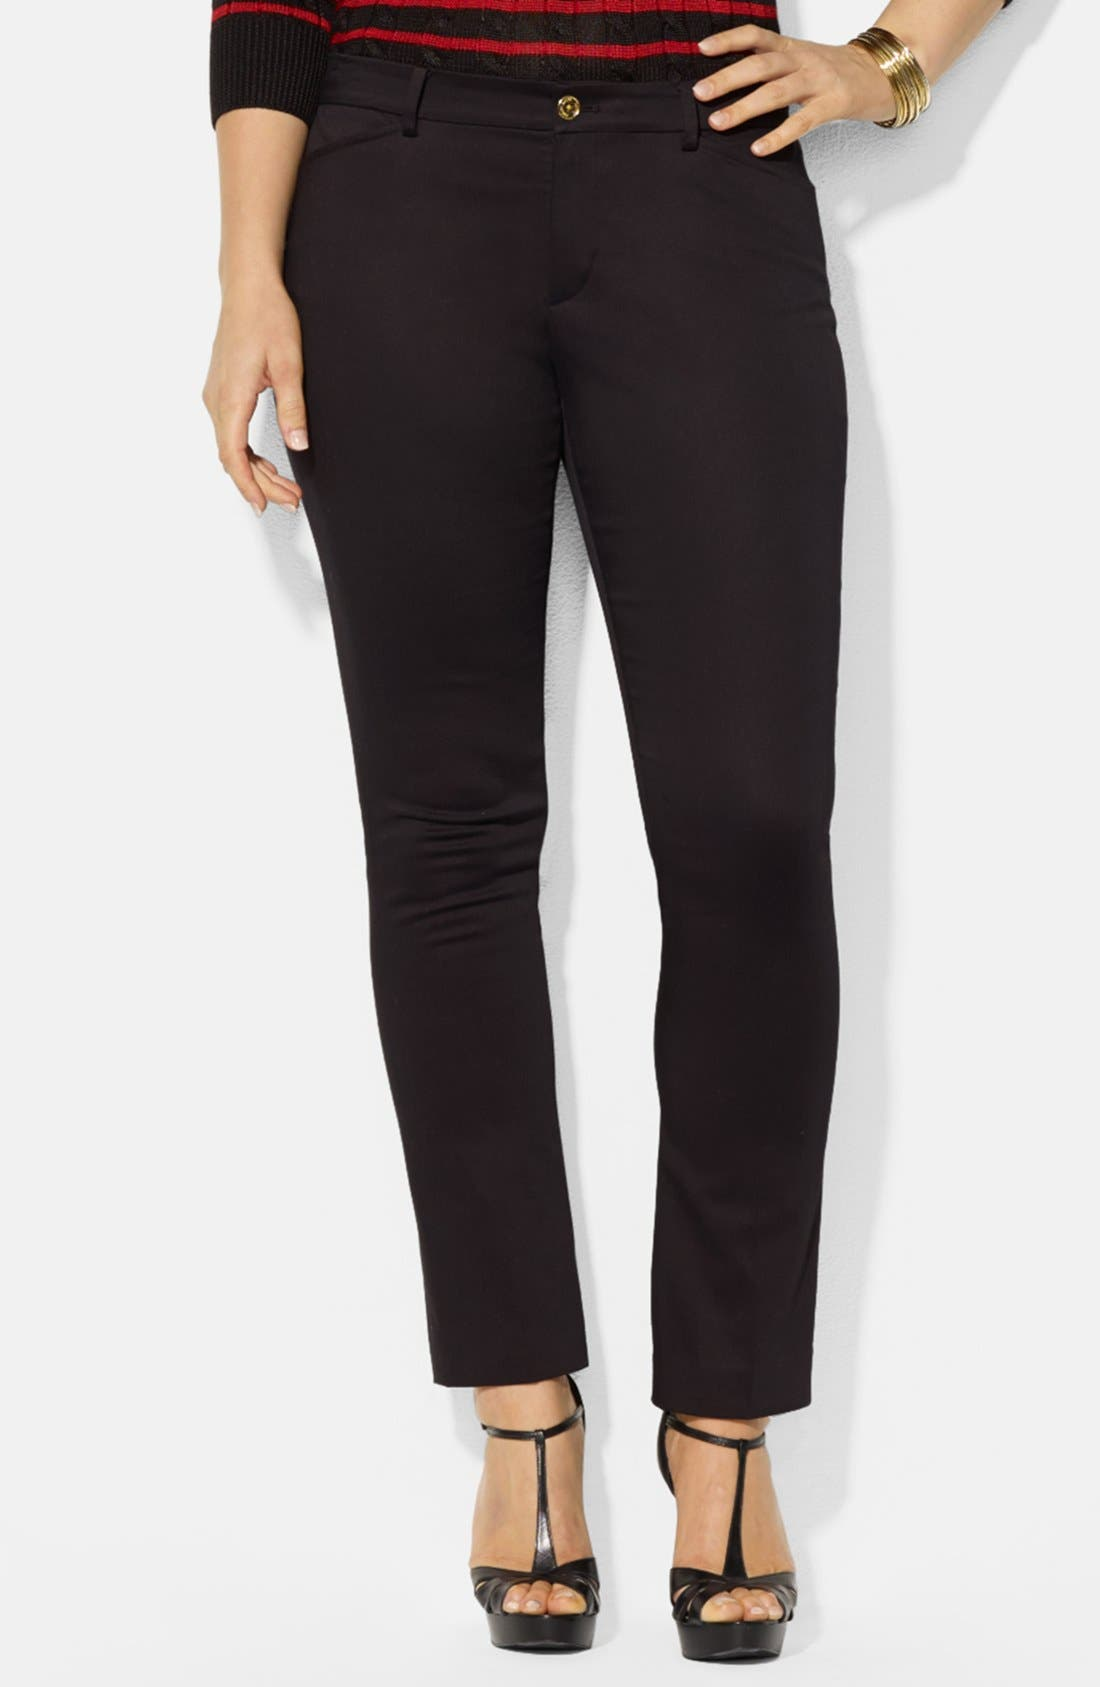 Alternate Image 1 Selected - Lauren Ralph Lauren Slim Ankle Pants (Plus Size)